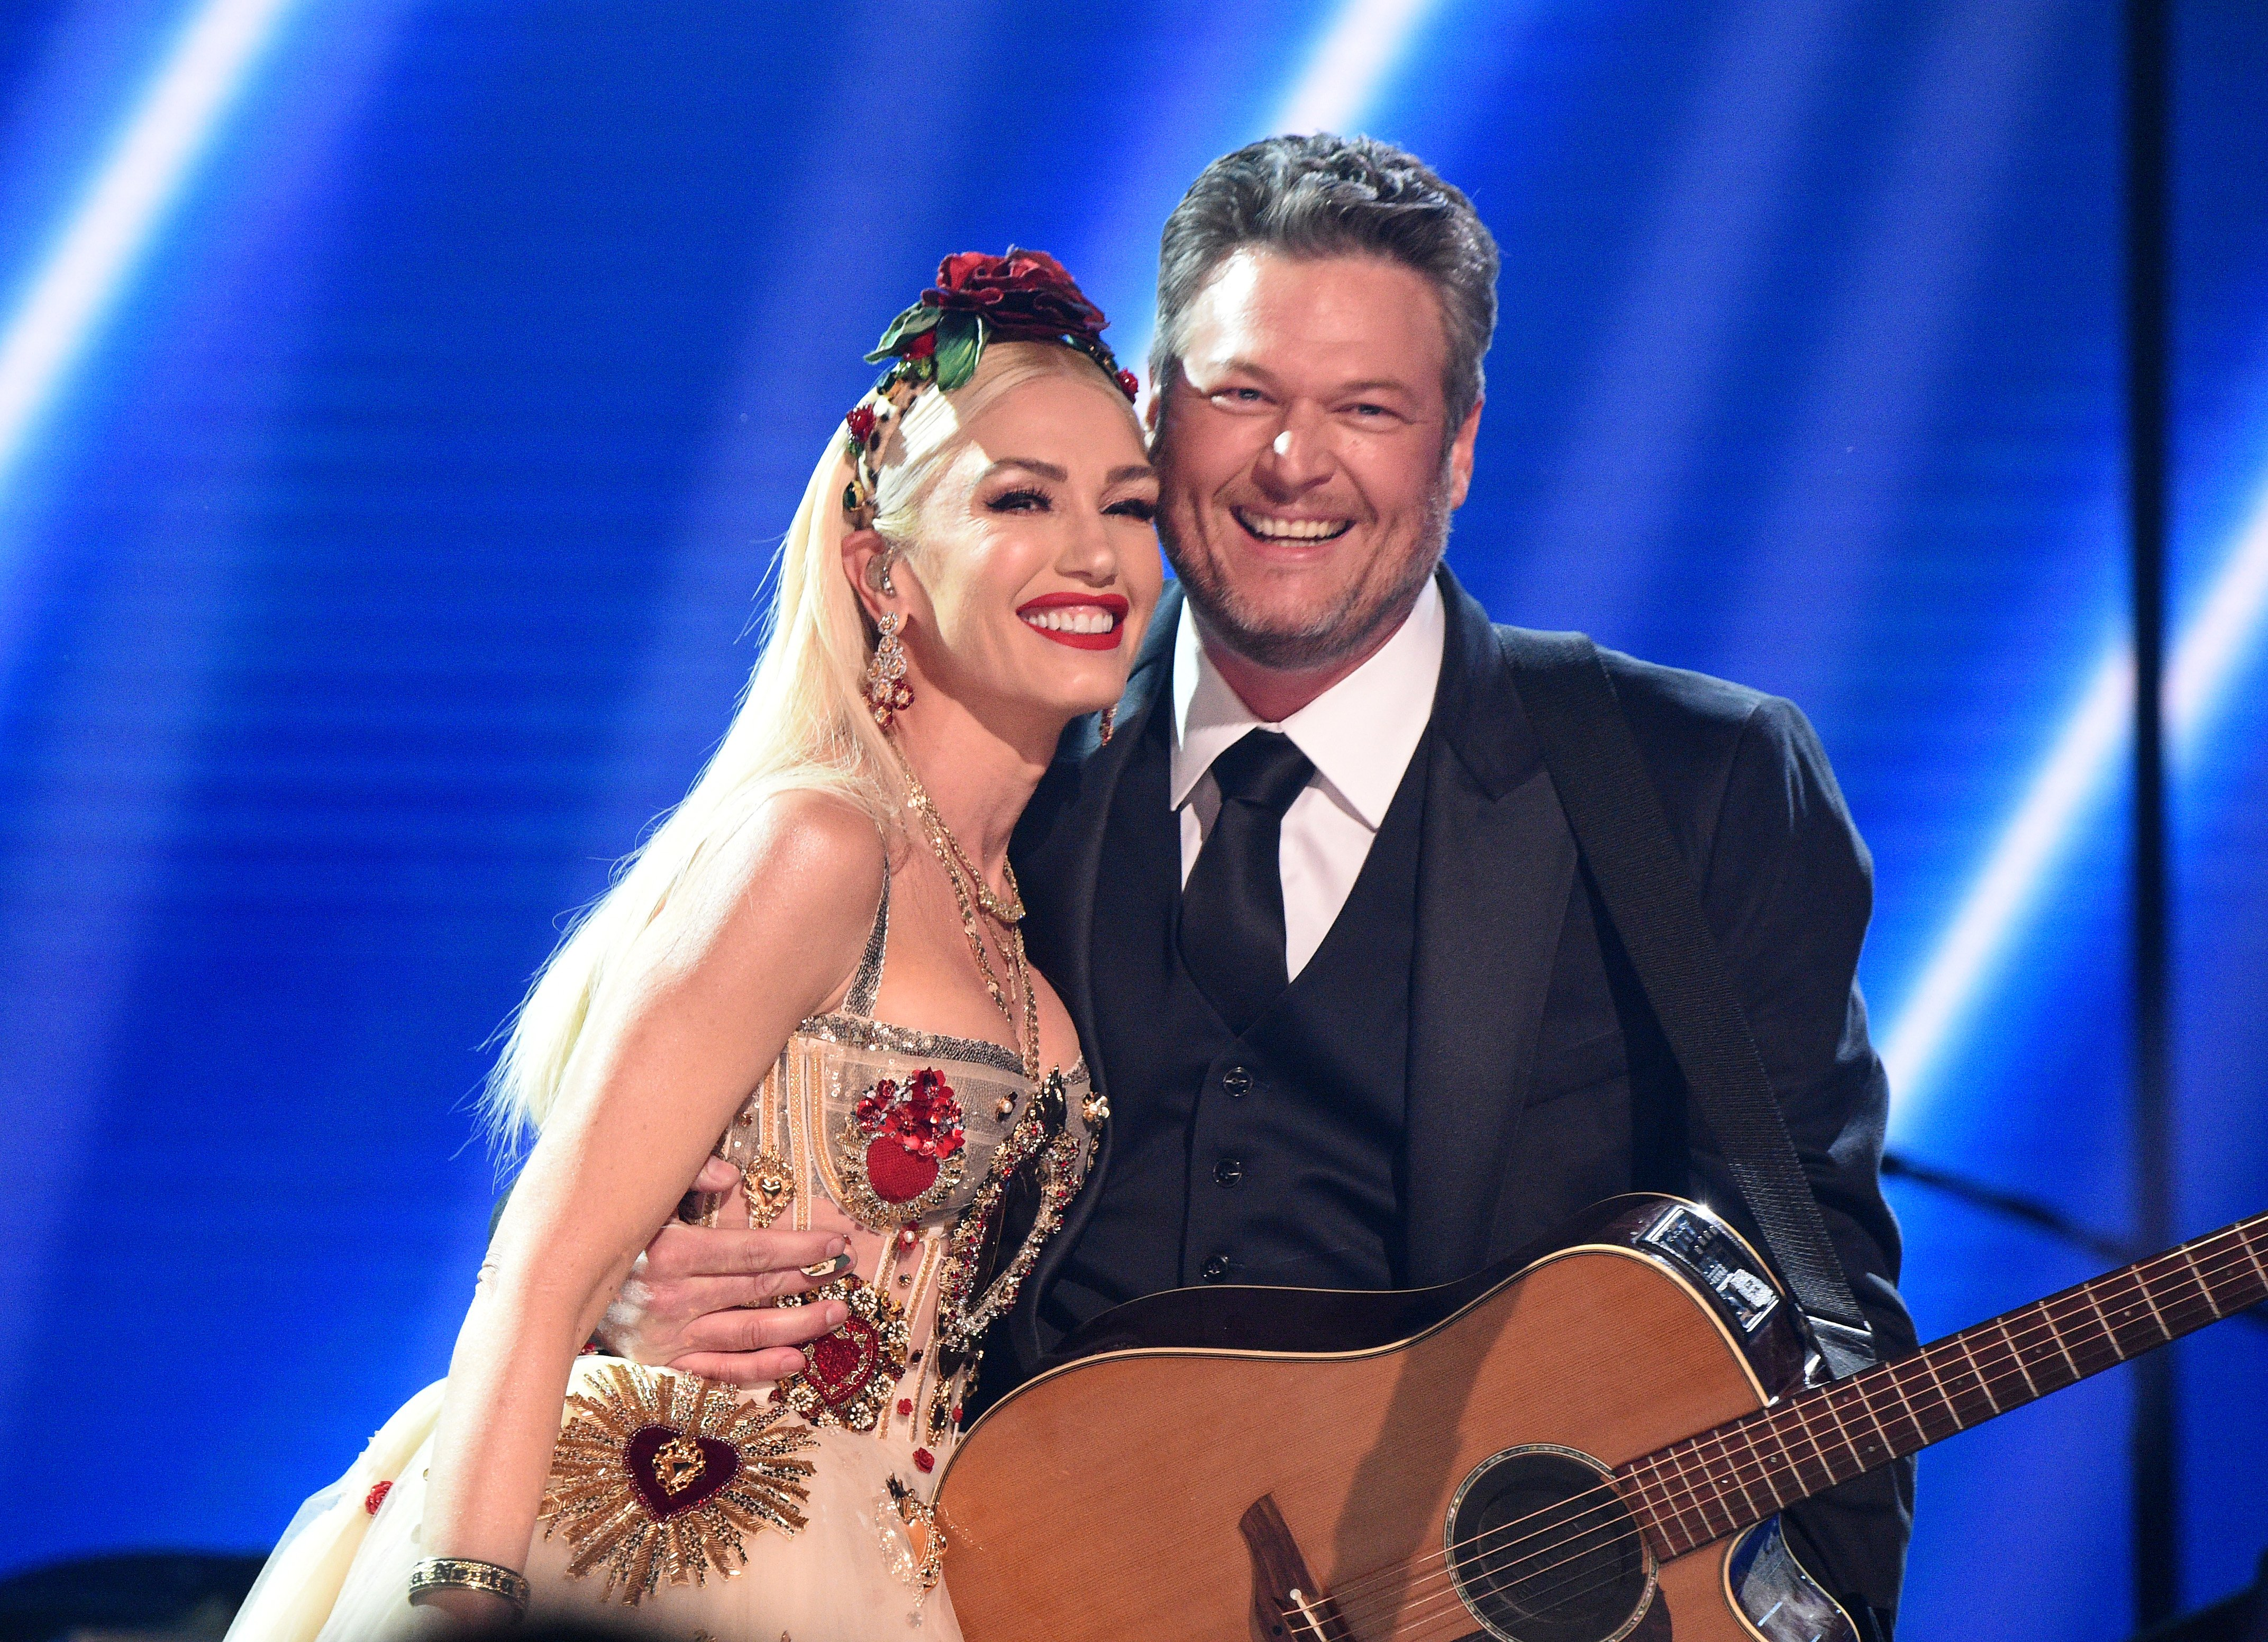 Gwen Stefani and Blake Shelton posed together onstage, 2020.  Photo: Getty Images